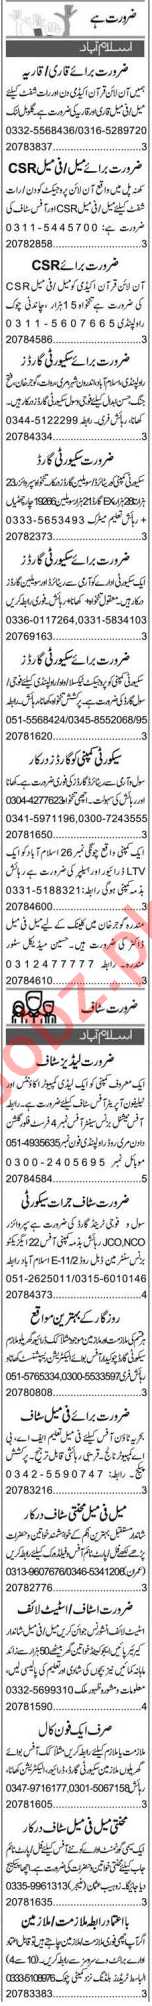 Media Assistant & Web Developer Jobs 2020 in Islamabad